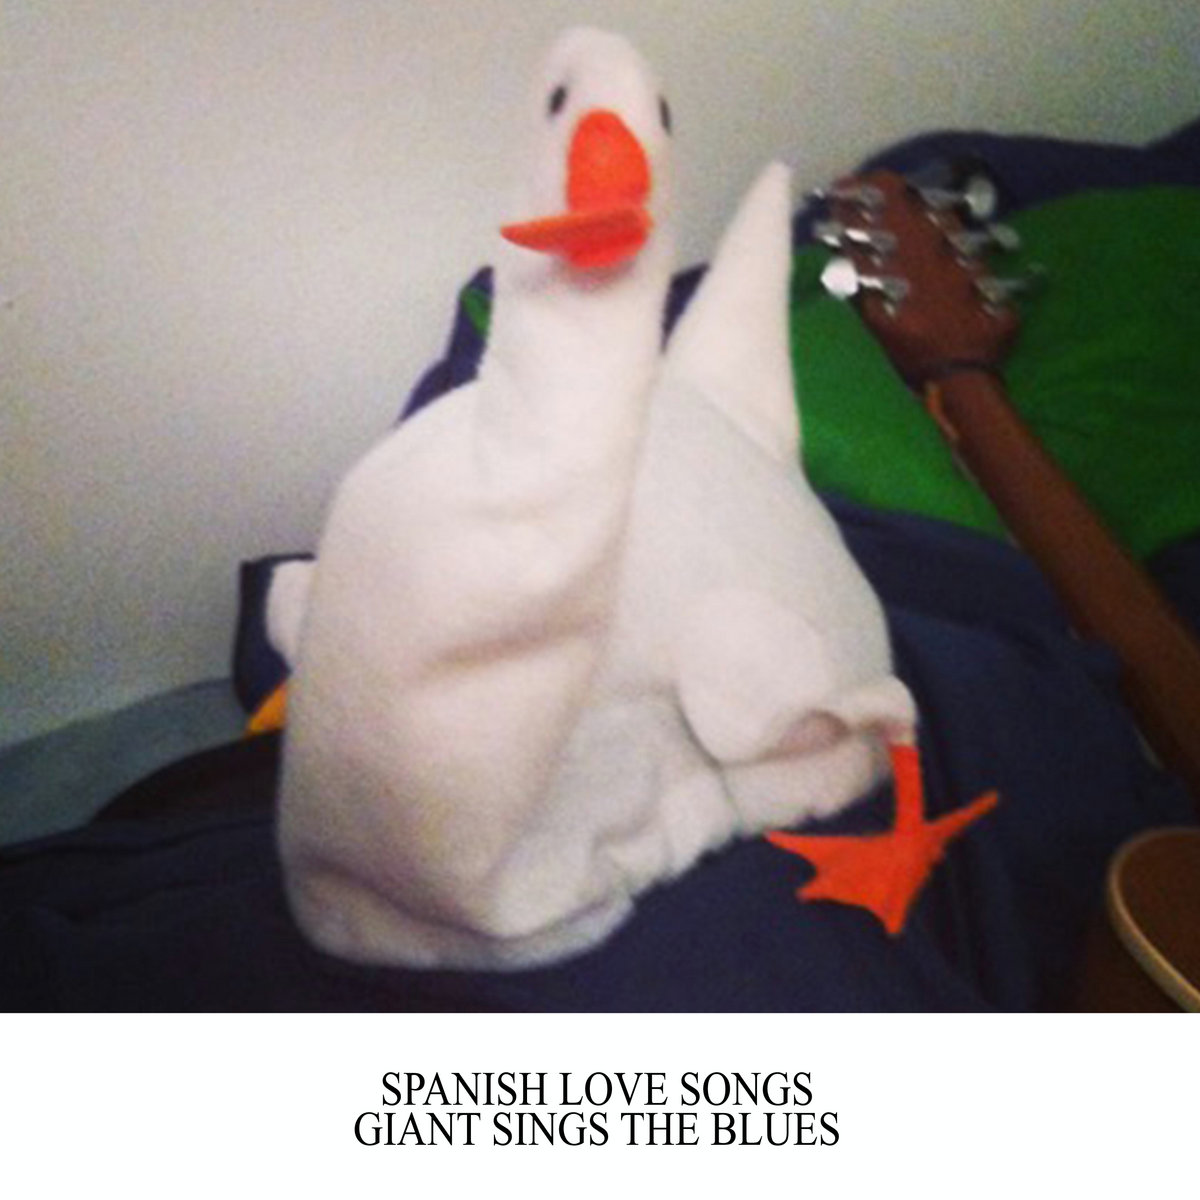 Giant Sings The Blues | Spanish Love Songs